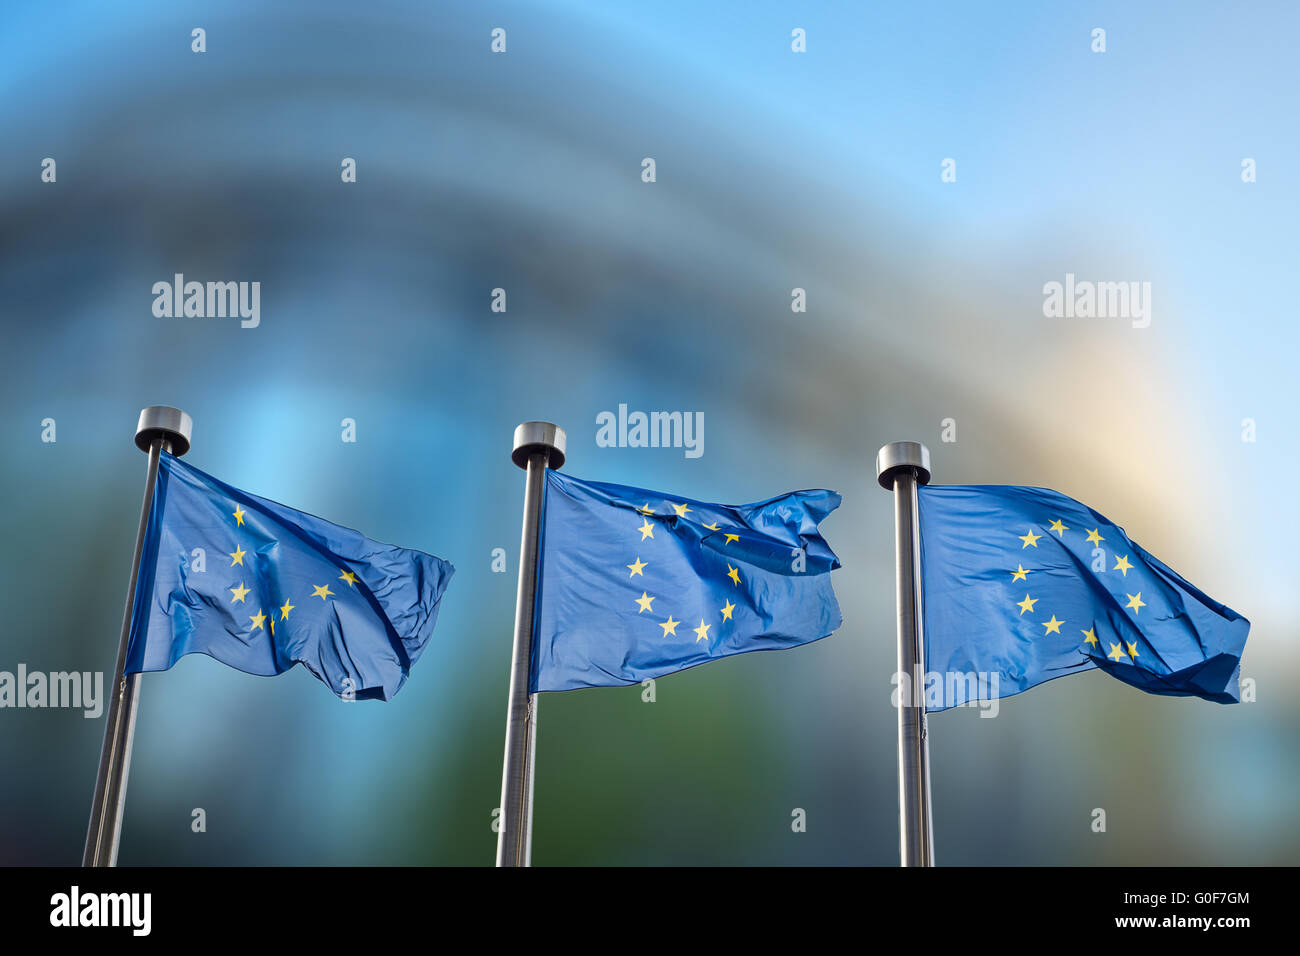 European Union flags against European Parliament - Stock Image